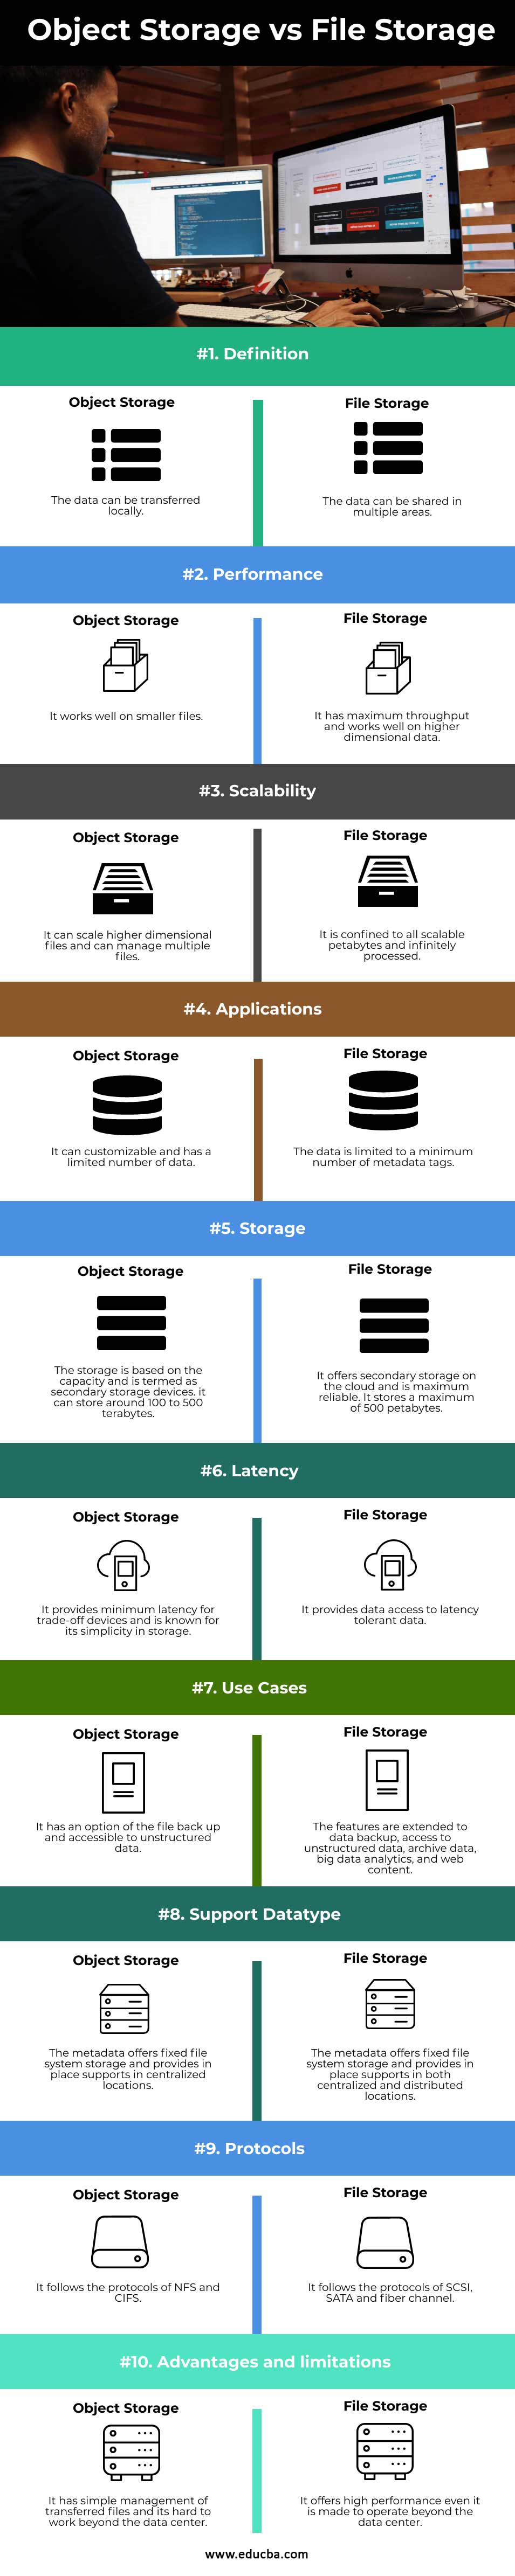 Object-Storage-vs-File-Storage-info